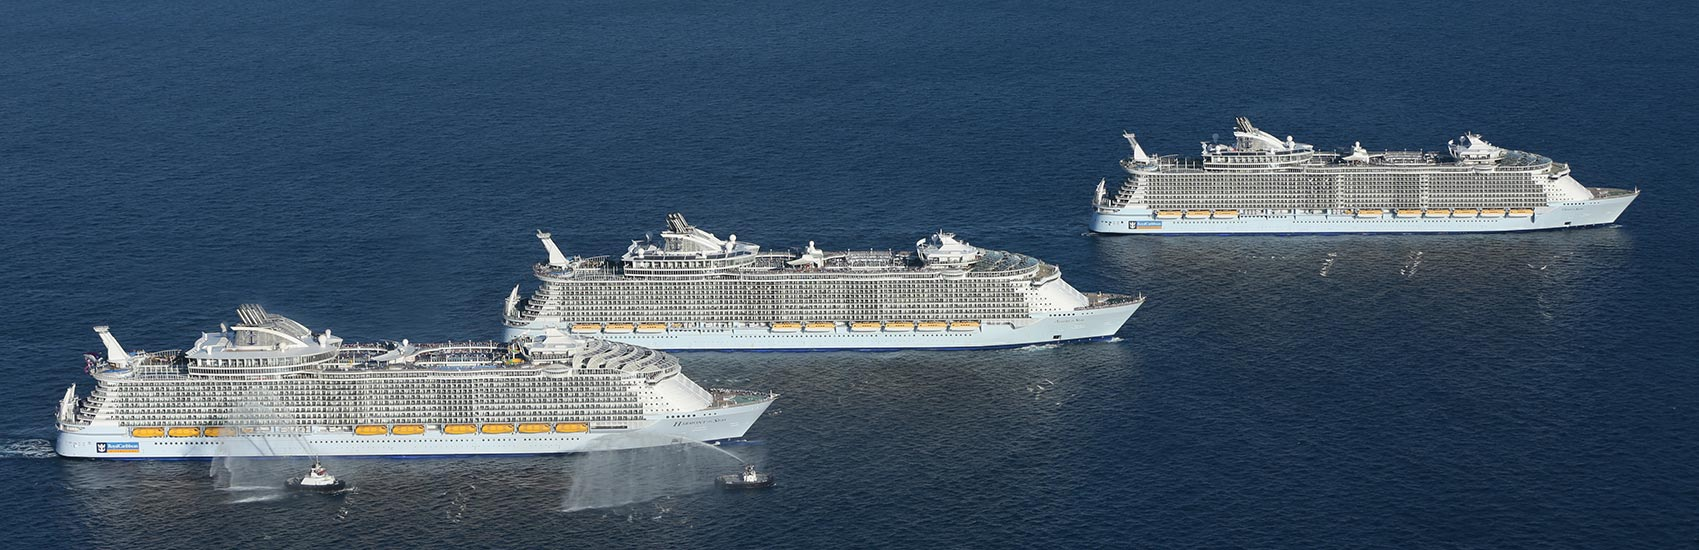 Royal Caribbean's Commitment to Health and Safety